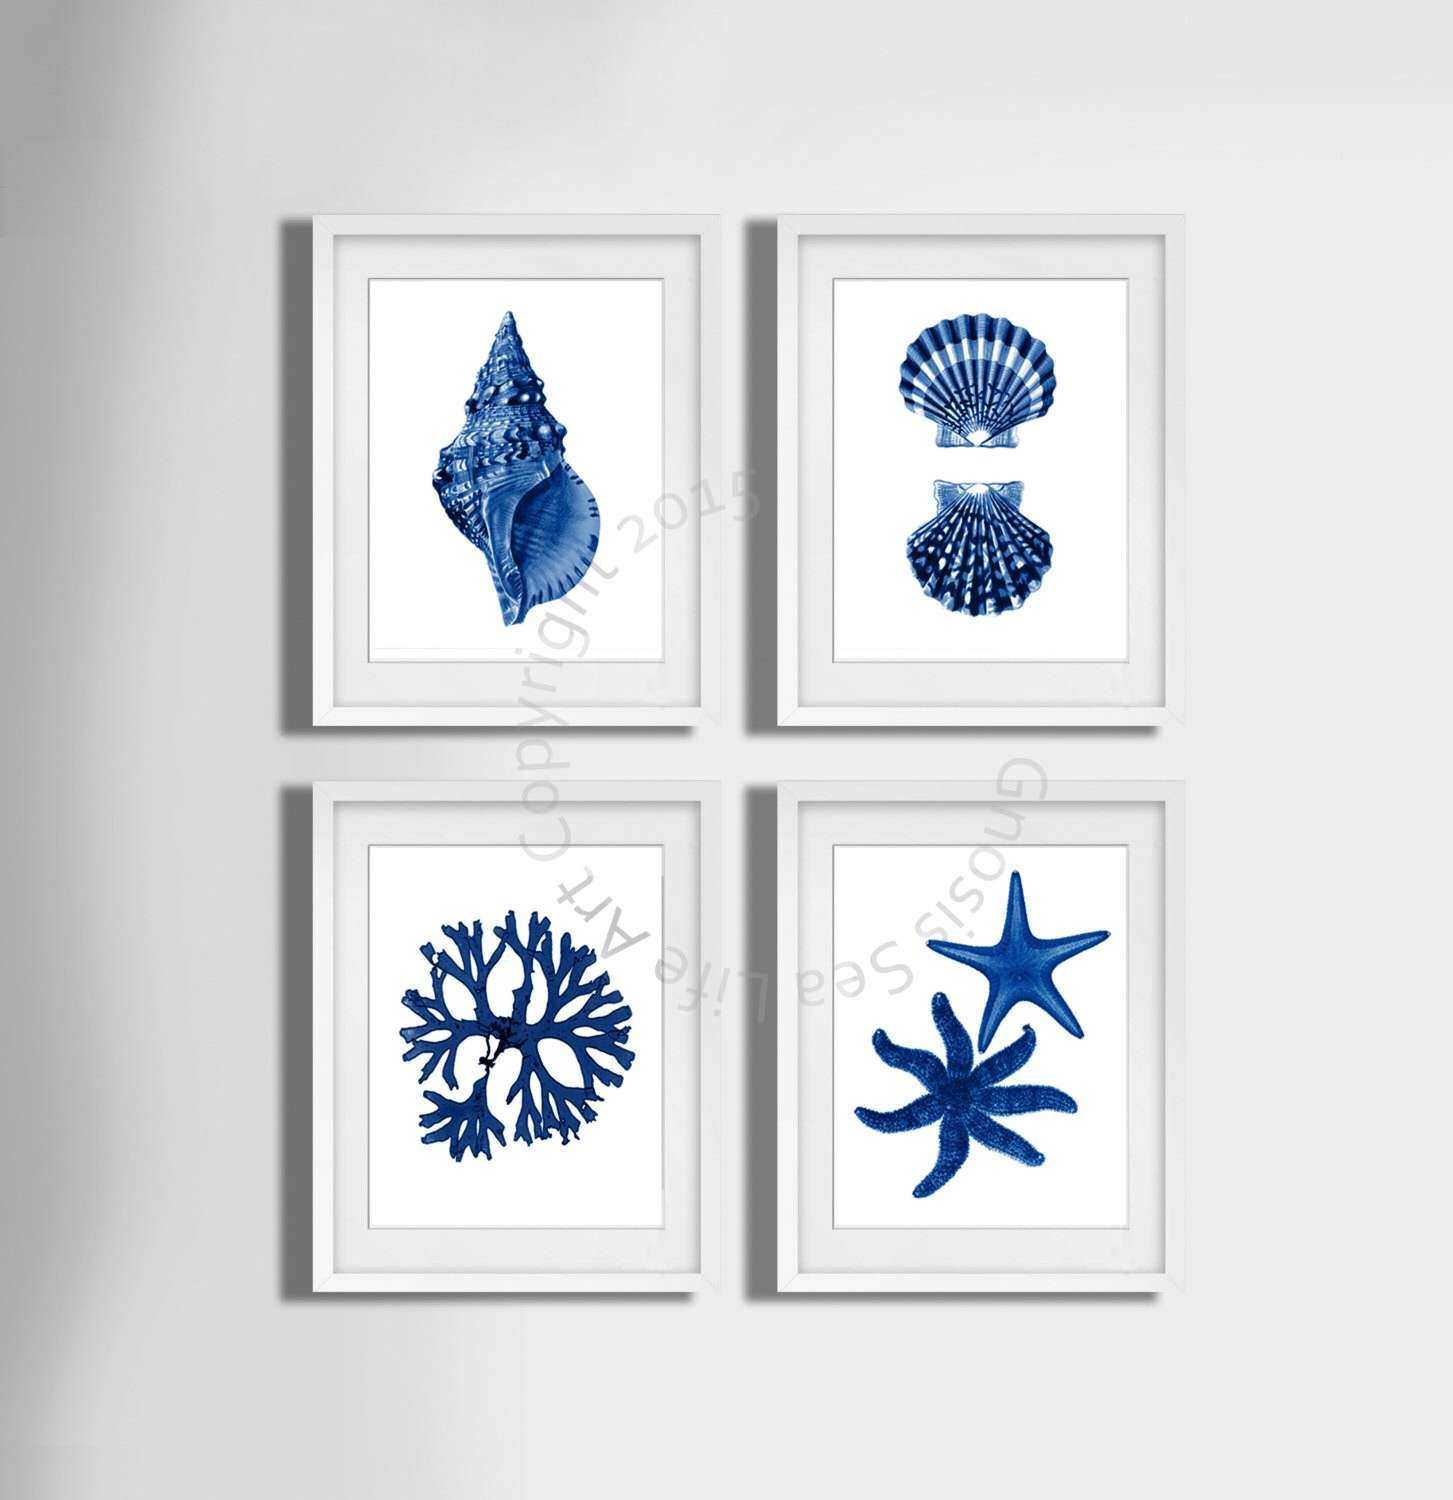 Coastal Wall Art New Navy Blue Wall Art Set 4 Beach Decor Seashells Seaweed and